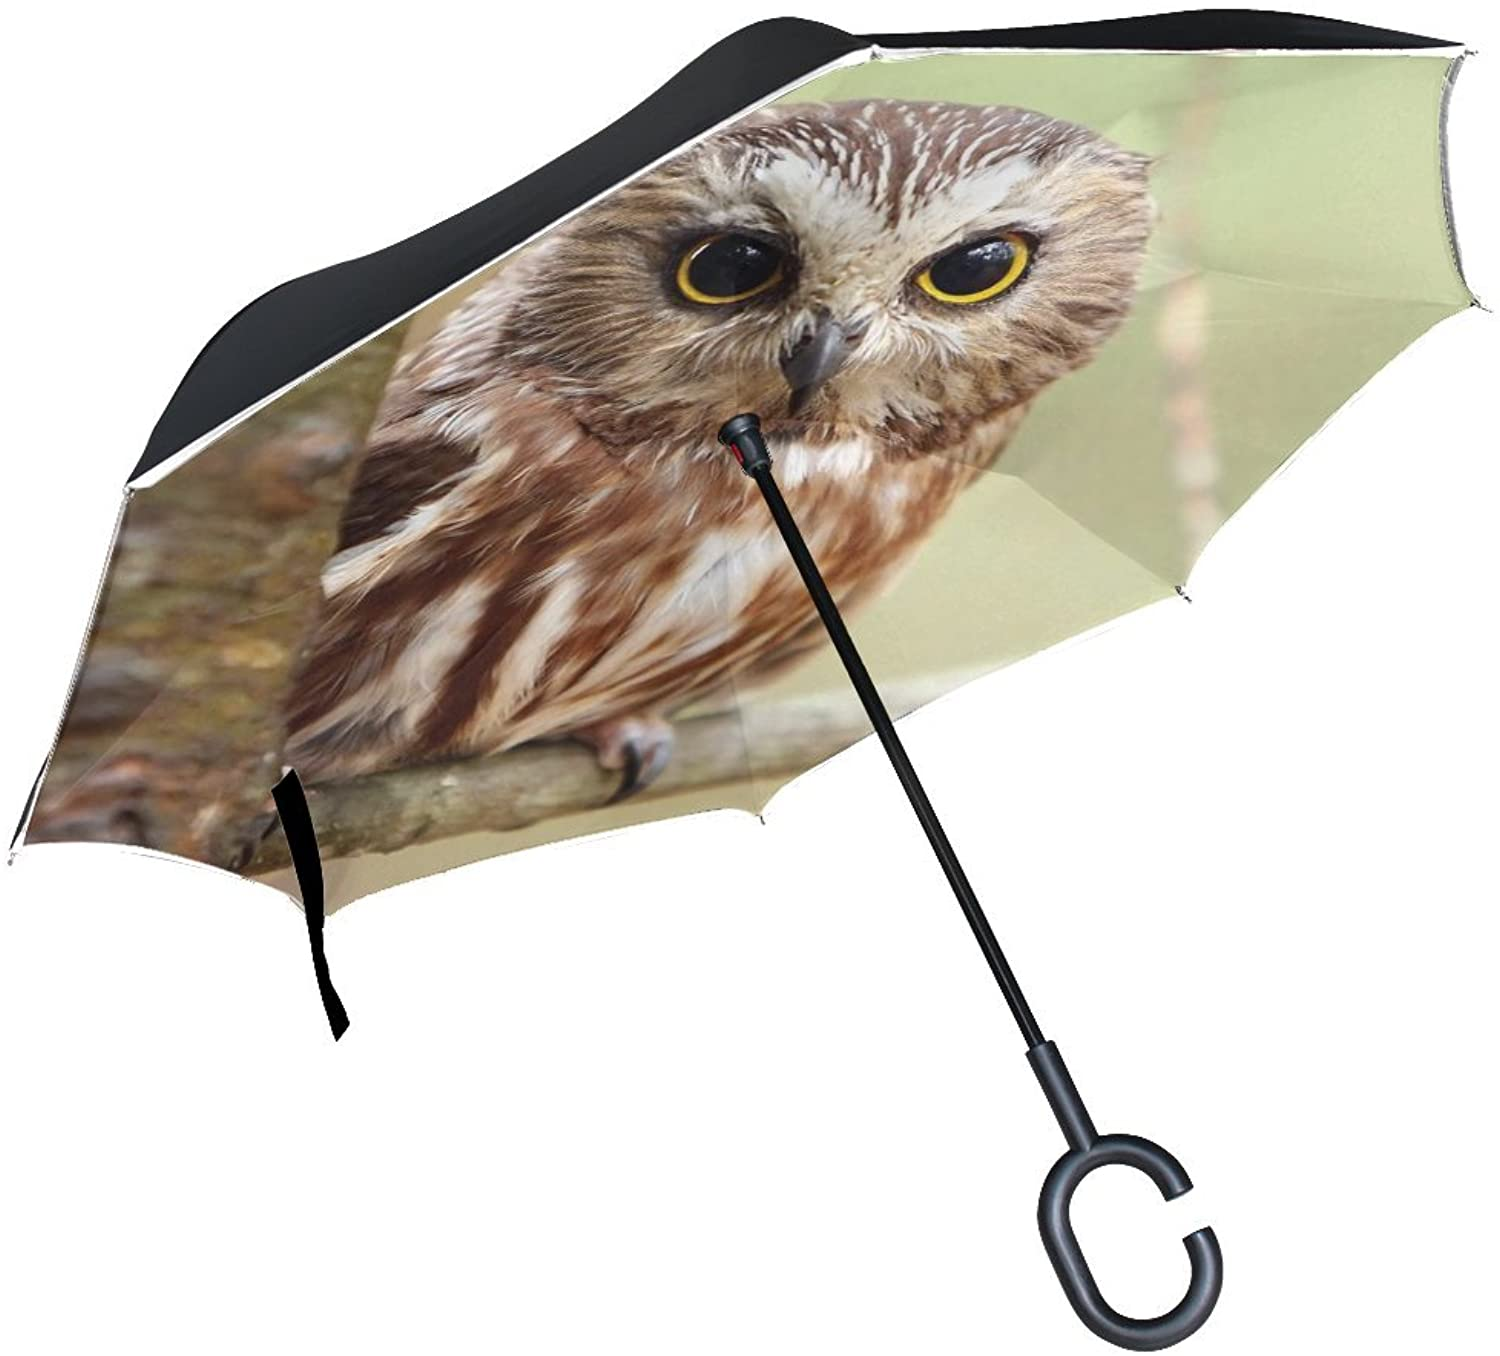 Animal Owl Elf Scenic Nature Landscape Plant Bush Flying Ingreened Umbrella Large Double Layer Outdoor Rain Sun Car Reversible Umbrella